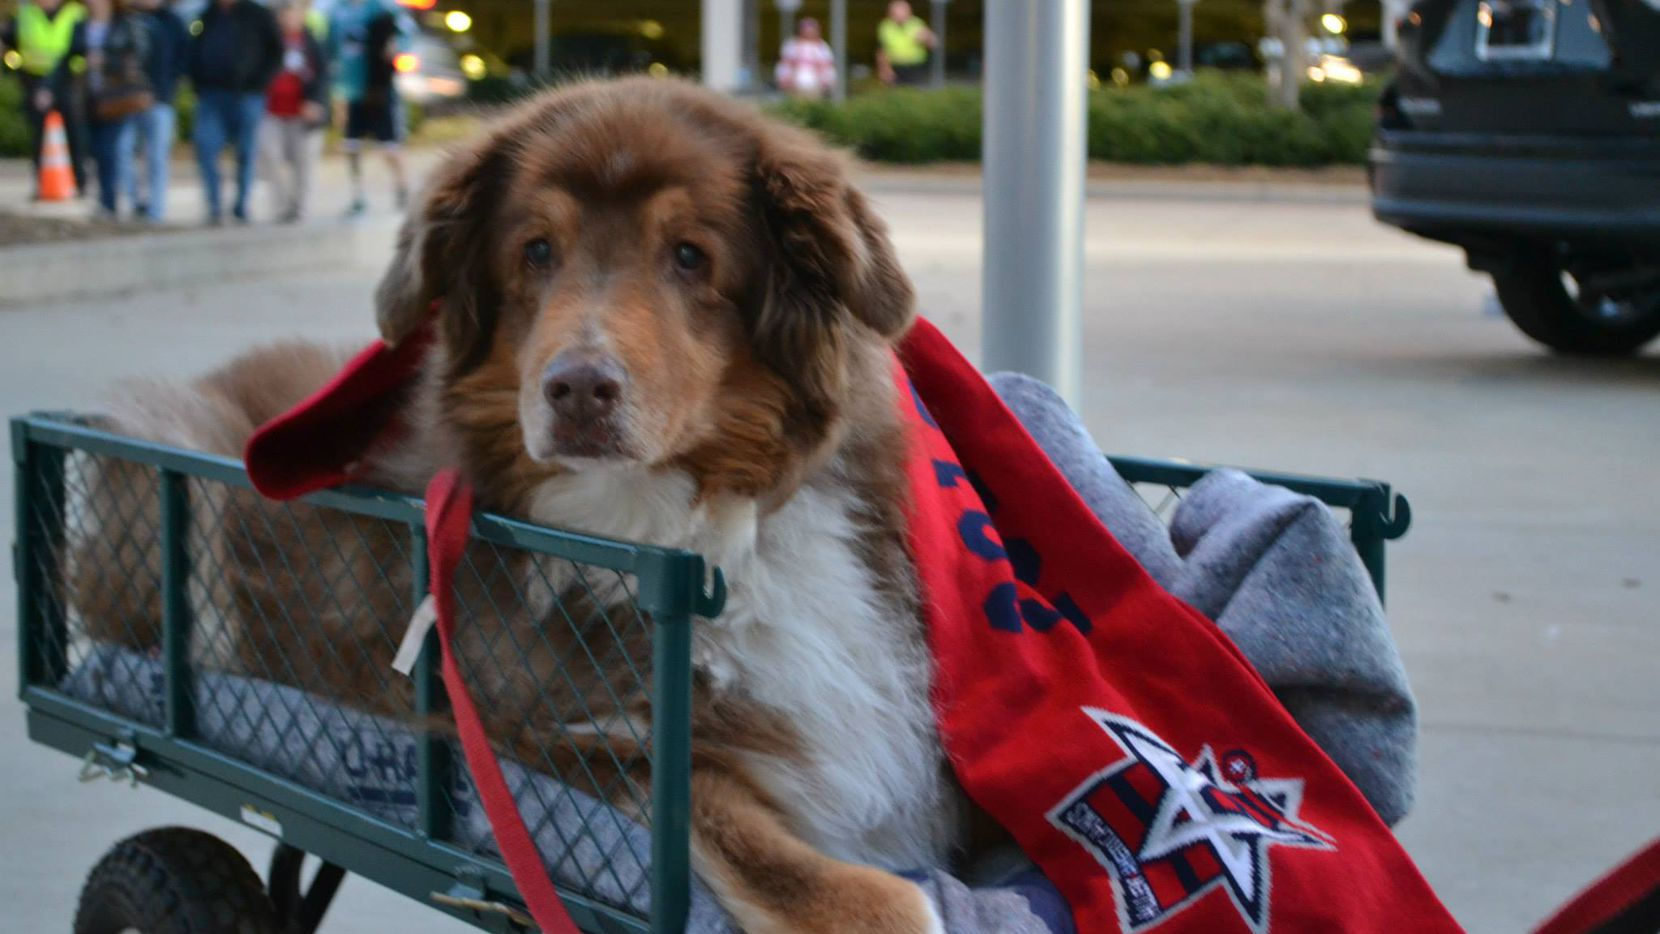 Pucks 'n Paws Night on Sunday will feature a dog-friendly section and intermission entertainment including doggy Zamboni riders and a canine costume contest.